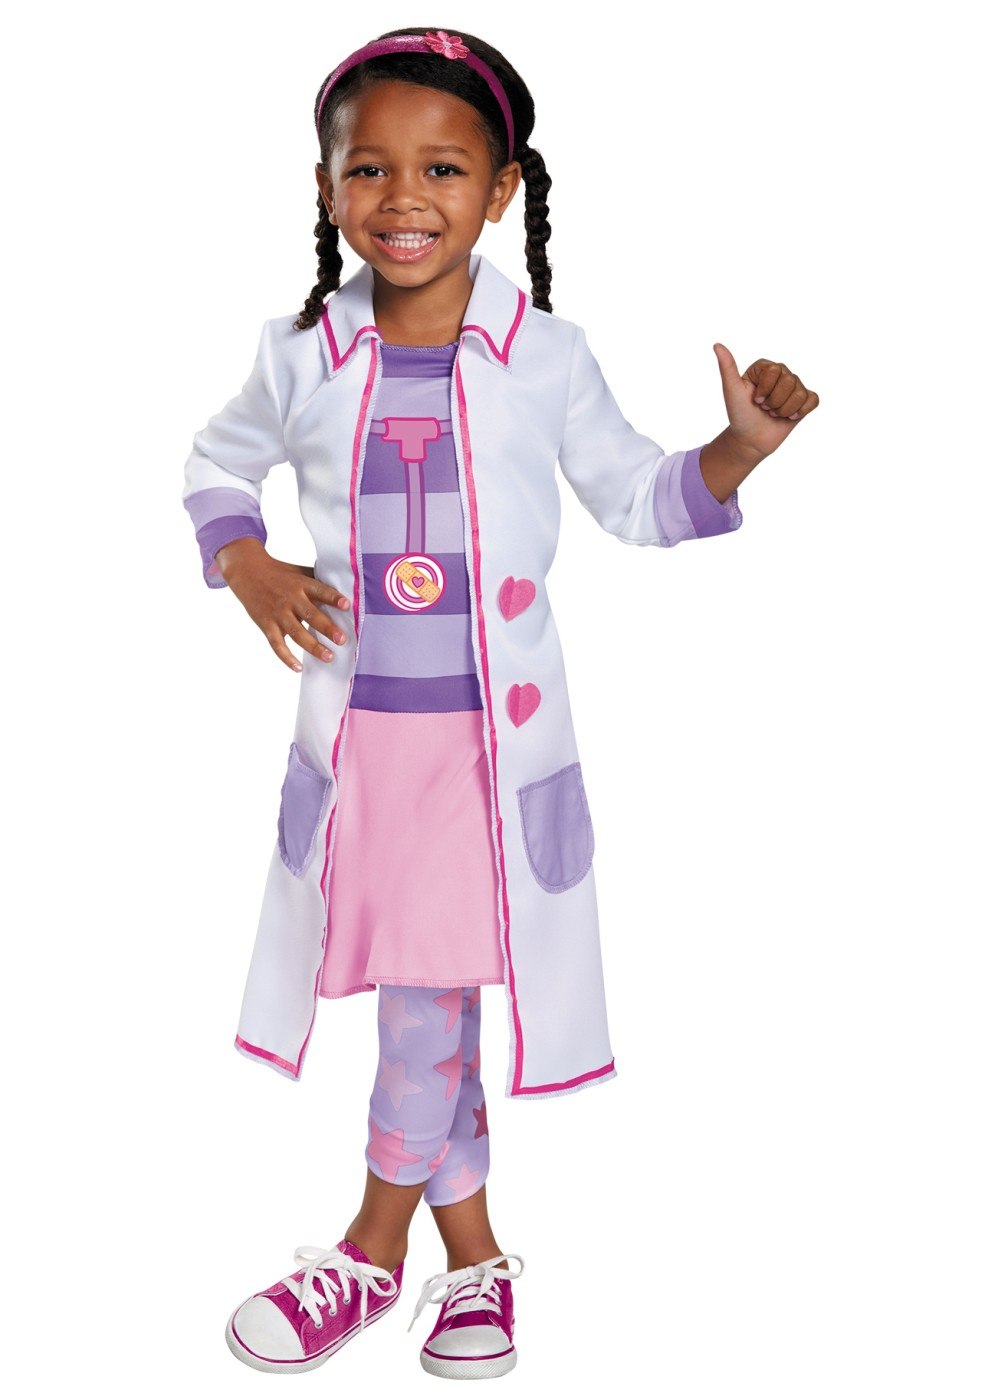 Professional Halloween Makeup Dallas: Doc Mcstuffins Hospital Girls Costume